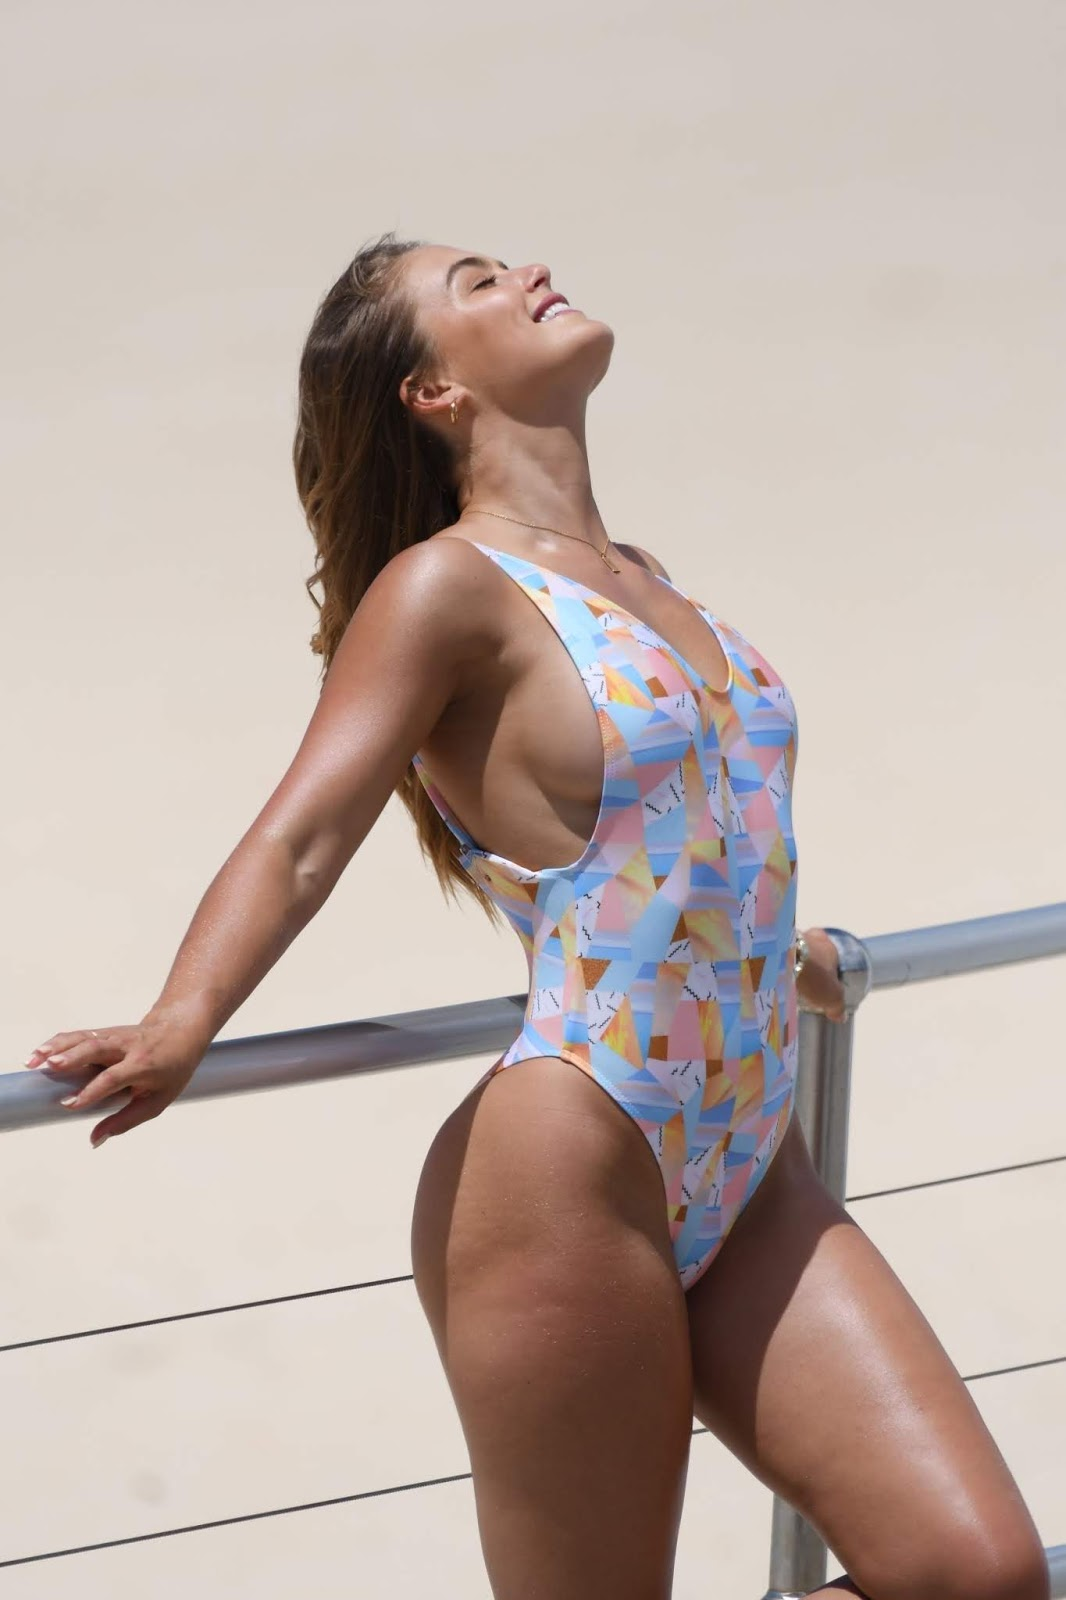 Steph Claire Smith poses in a variety of bikinis ...